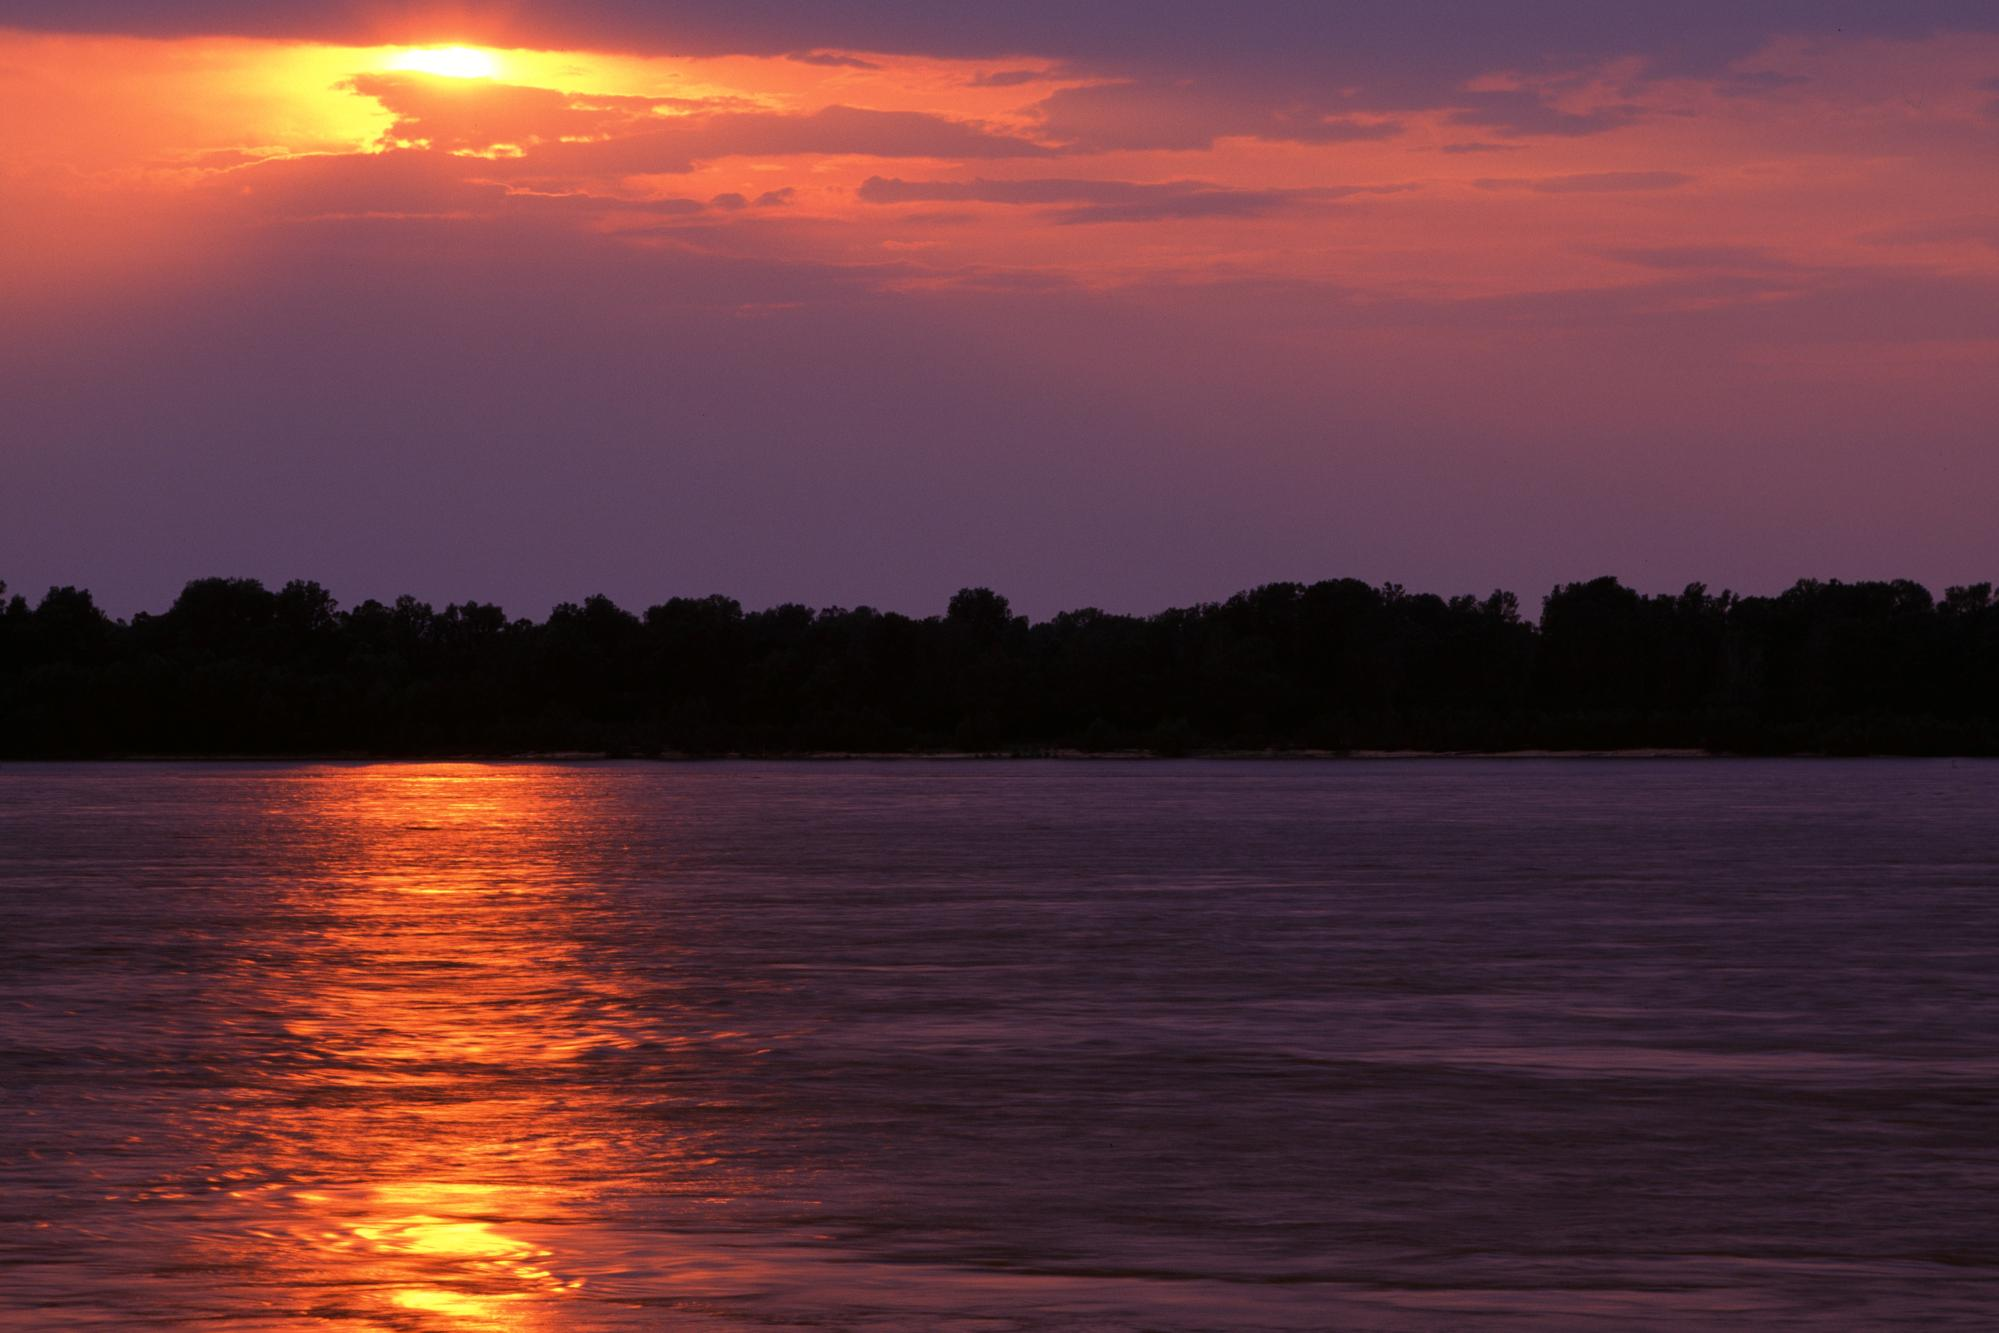 Sunset Over the Mississippi River, Arkansas